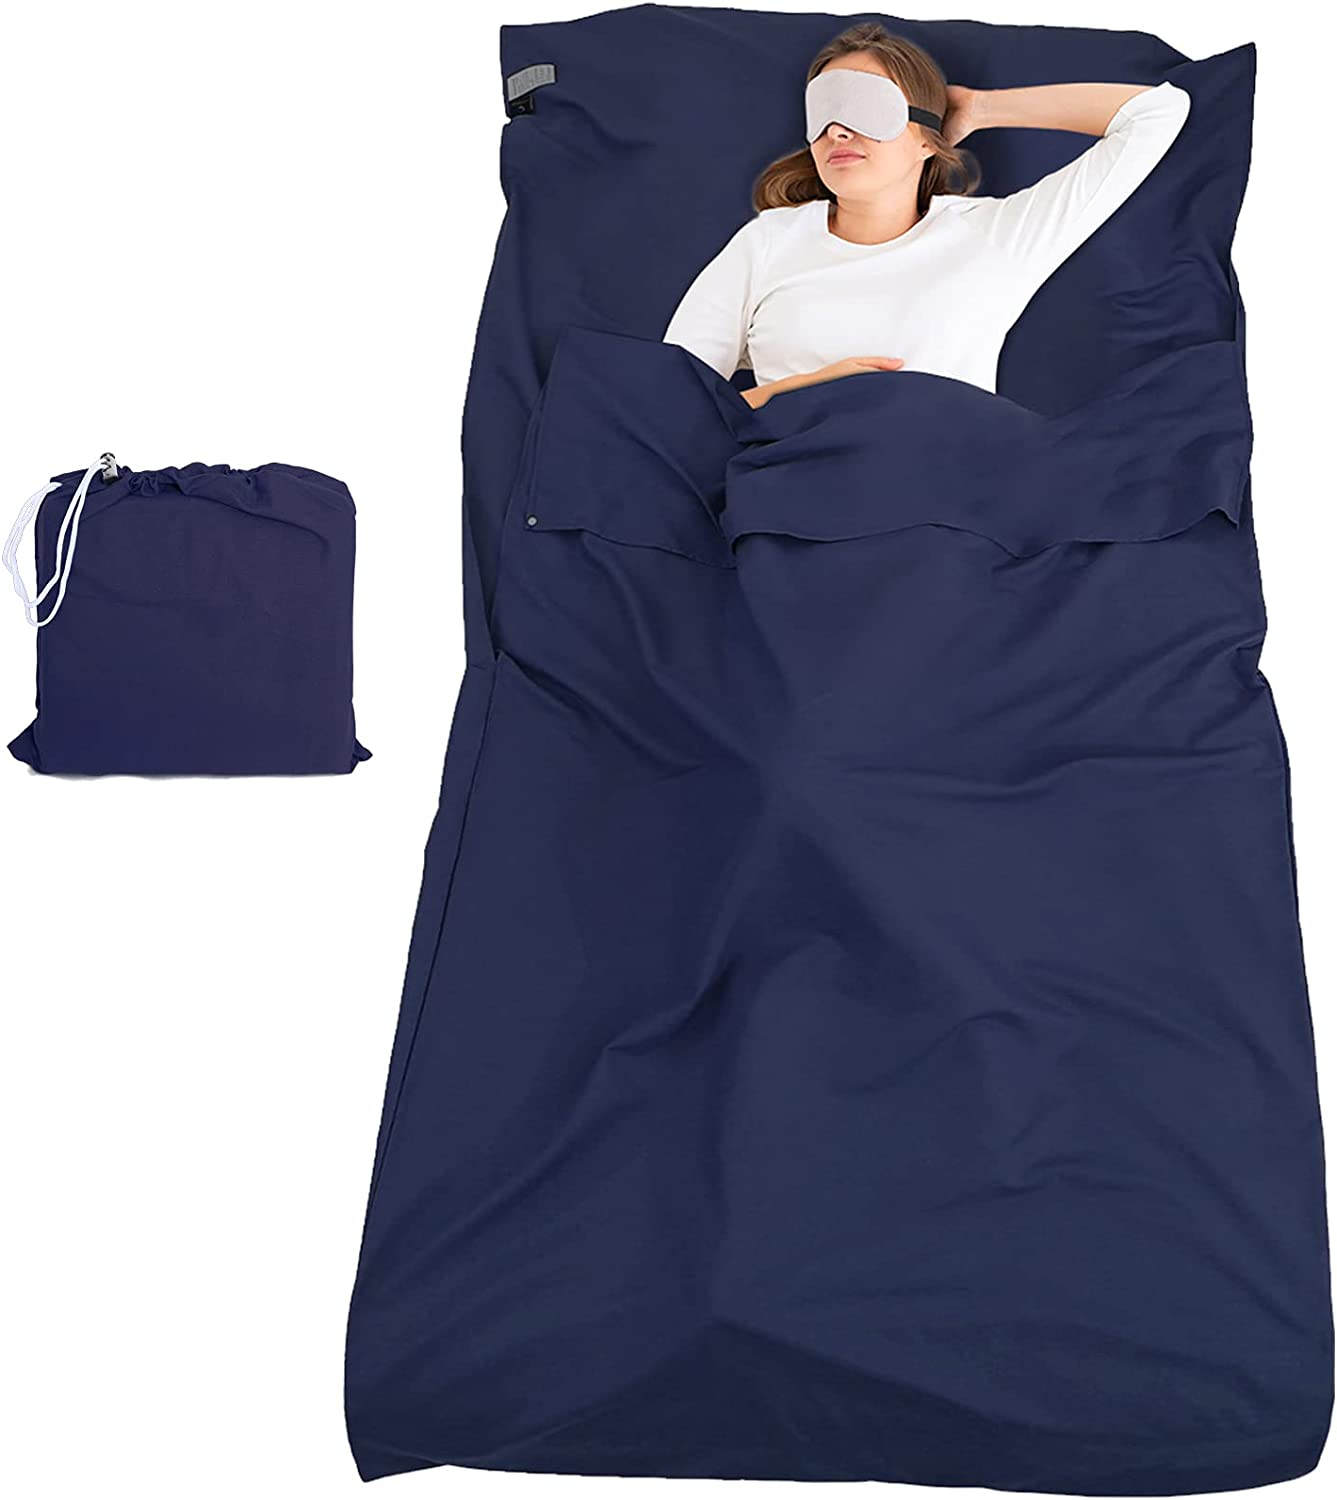 Sleeping Bag Our shop most popular Liner Year-end annual account and Camping for Sheet Sheets Sack